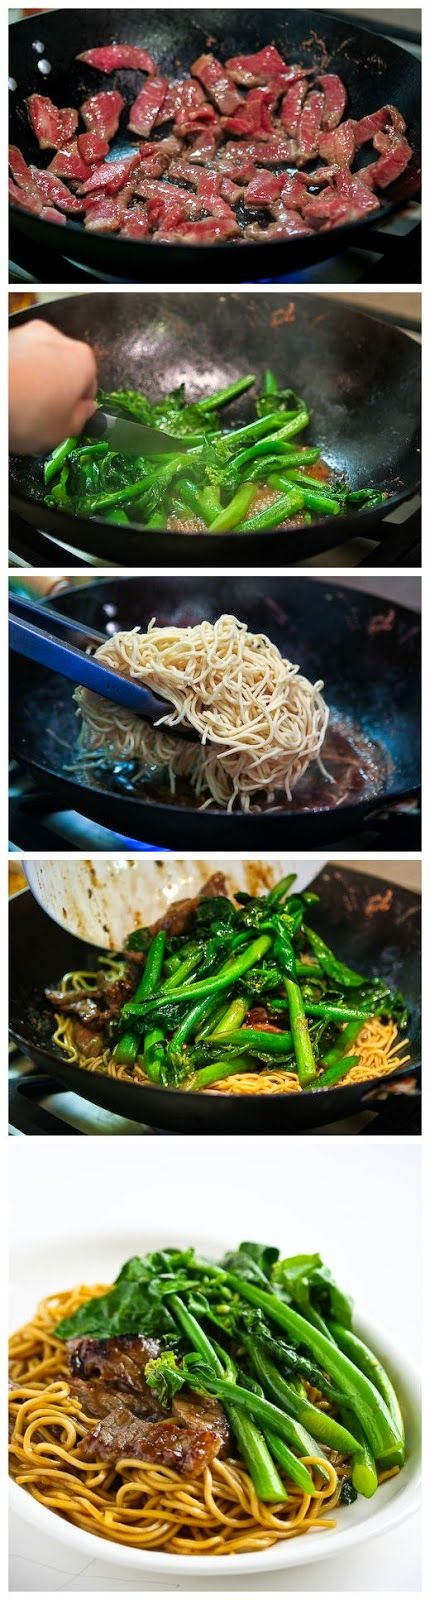 Chinese Broccoli Beef Noodle Stir Fry | Food drink